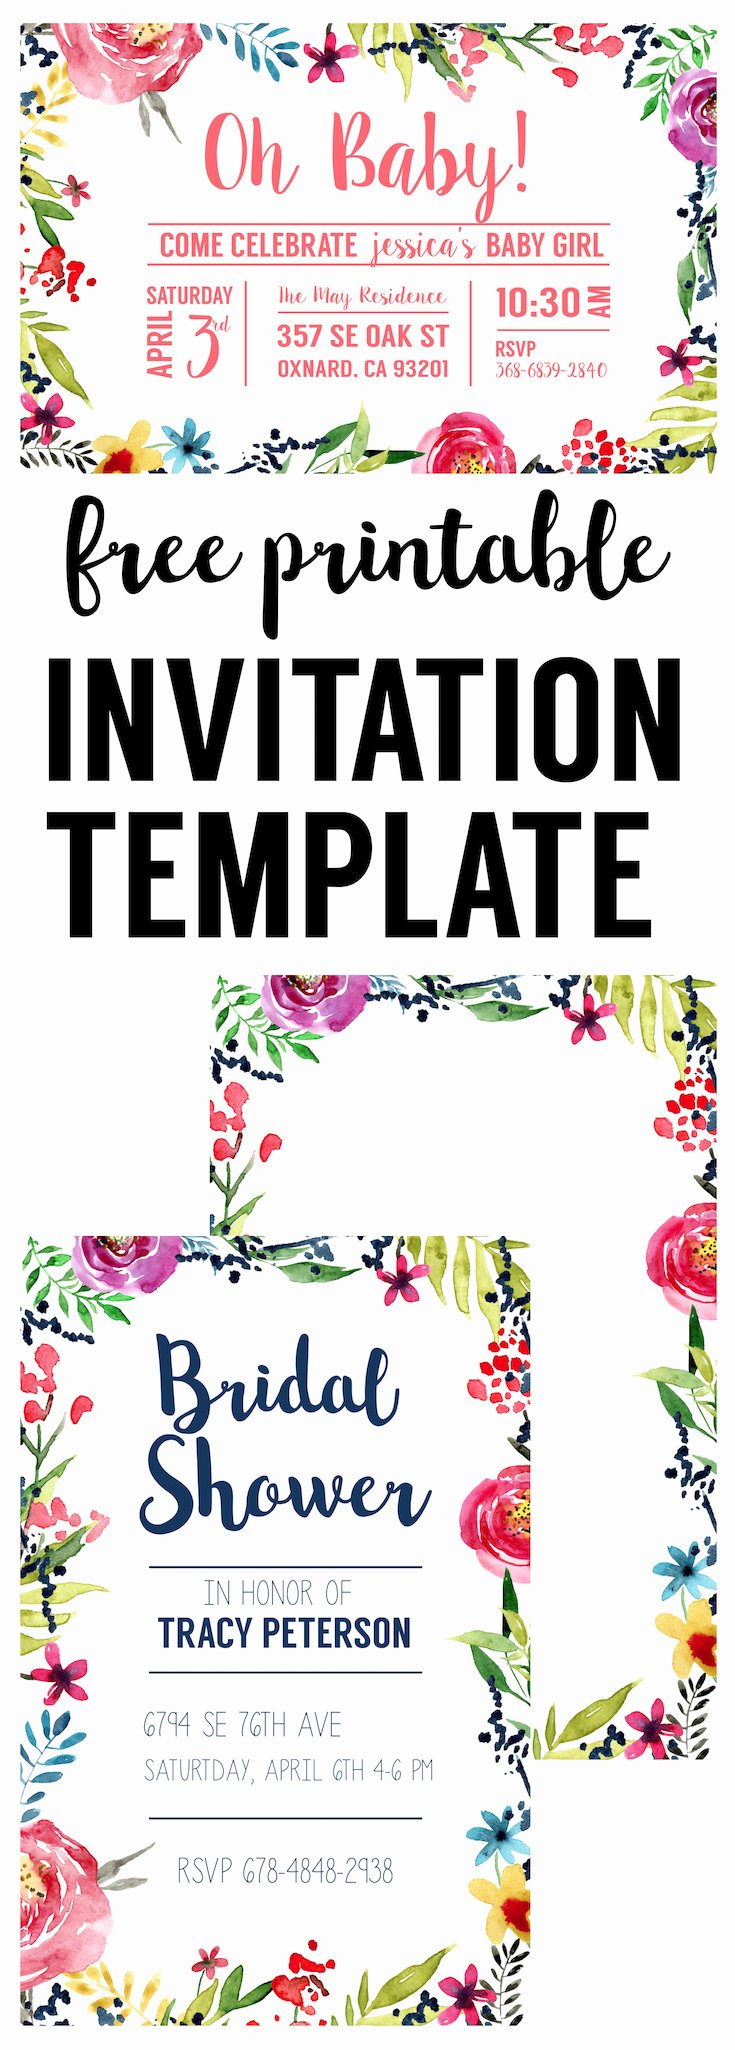 Floral Borders Invitations Free Printable Invitation